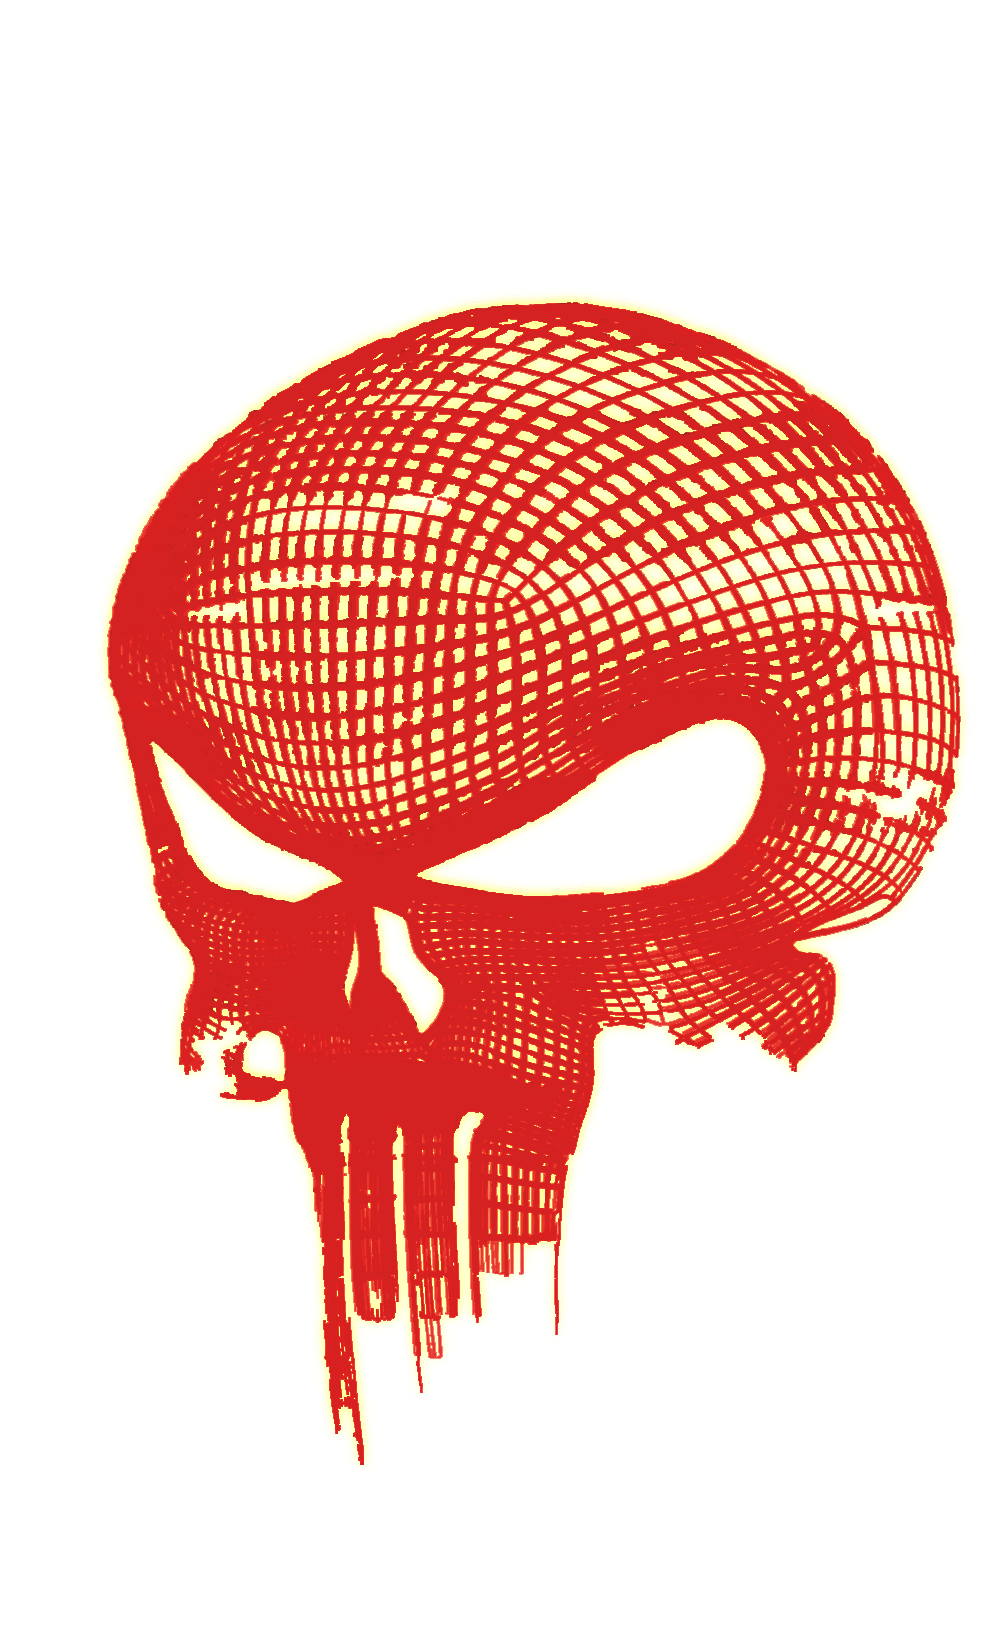 the punisher glowing skull png logo #3602